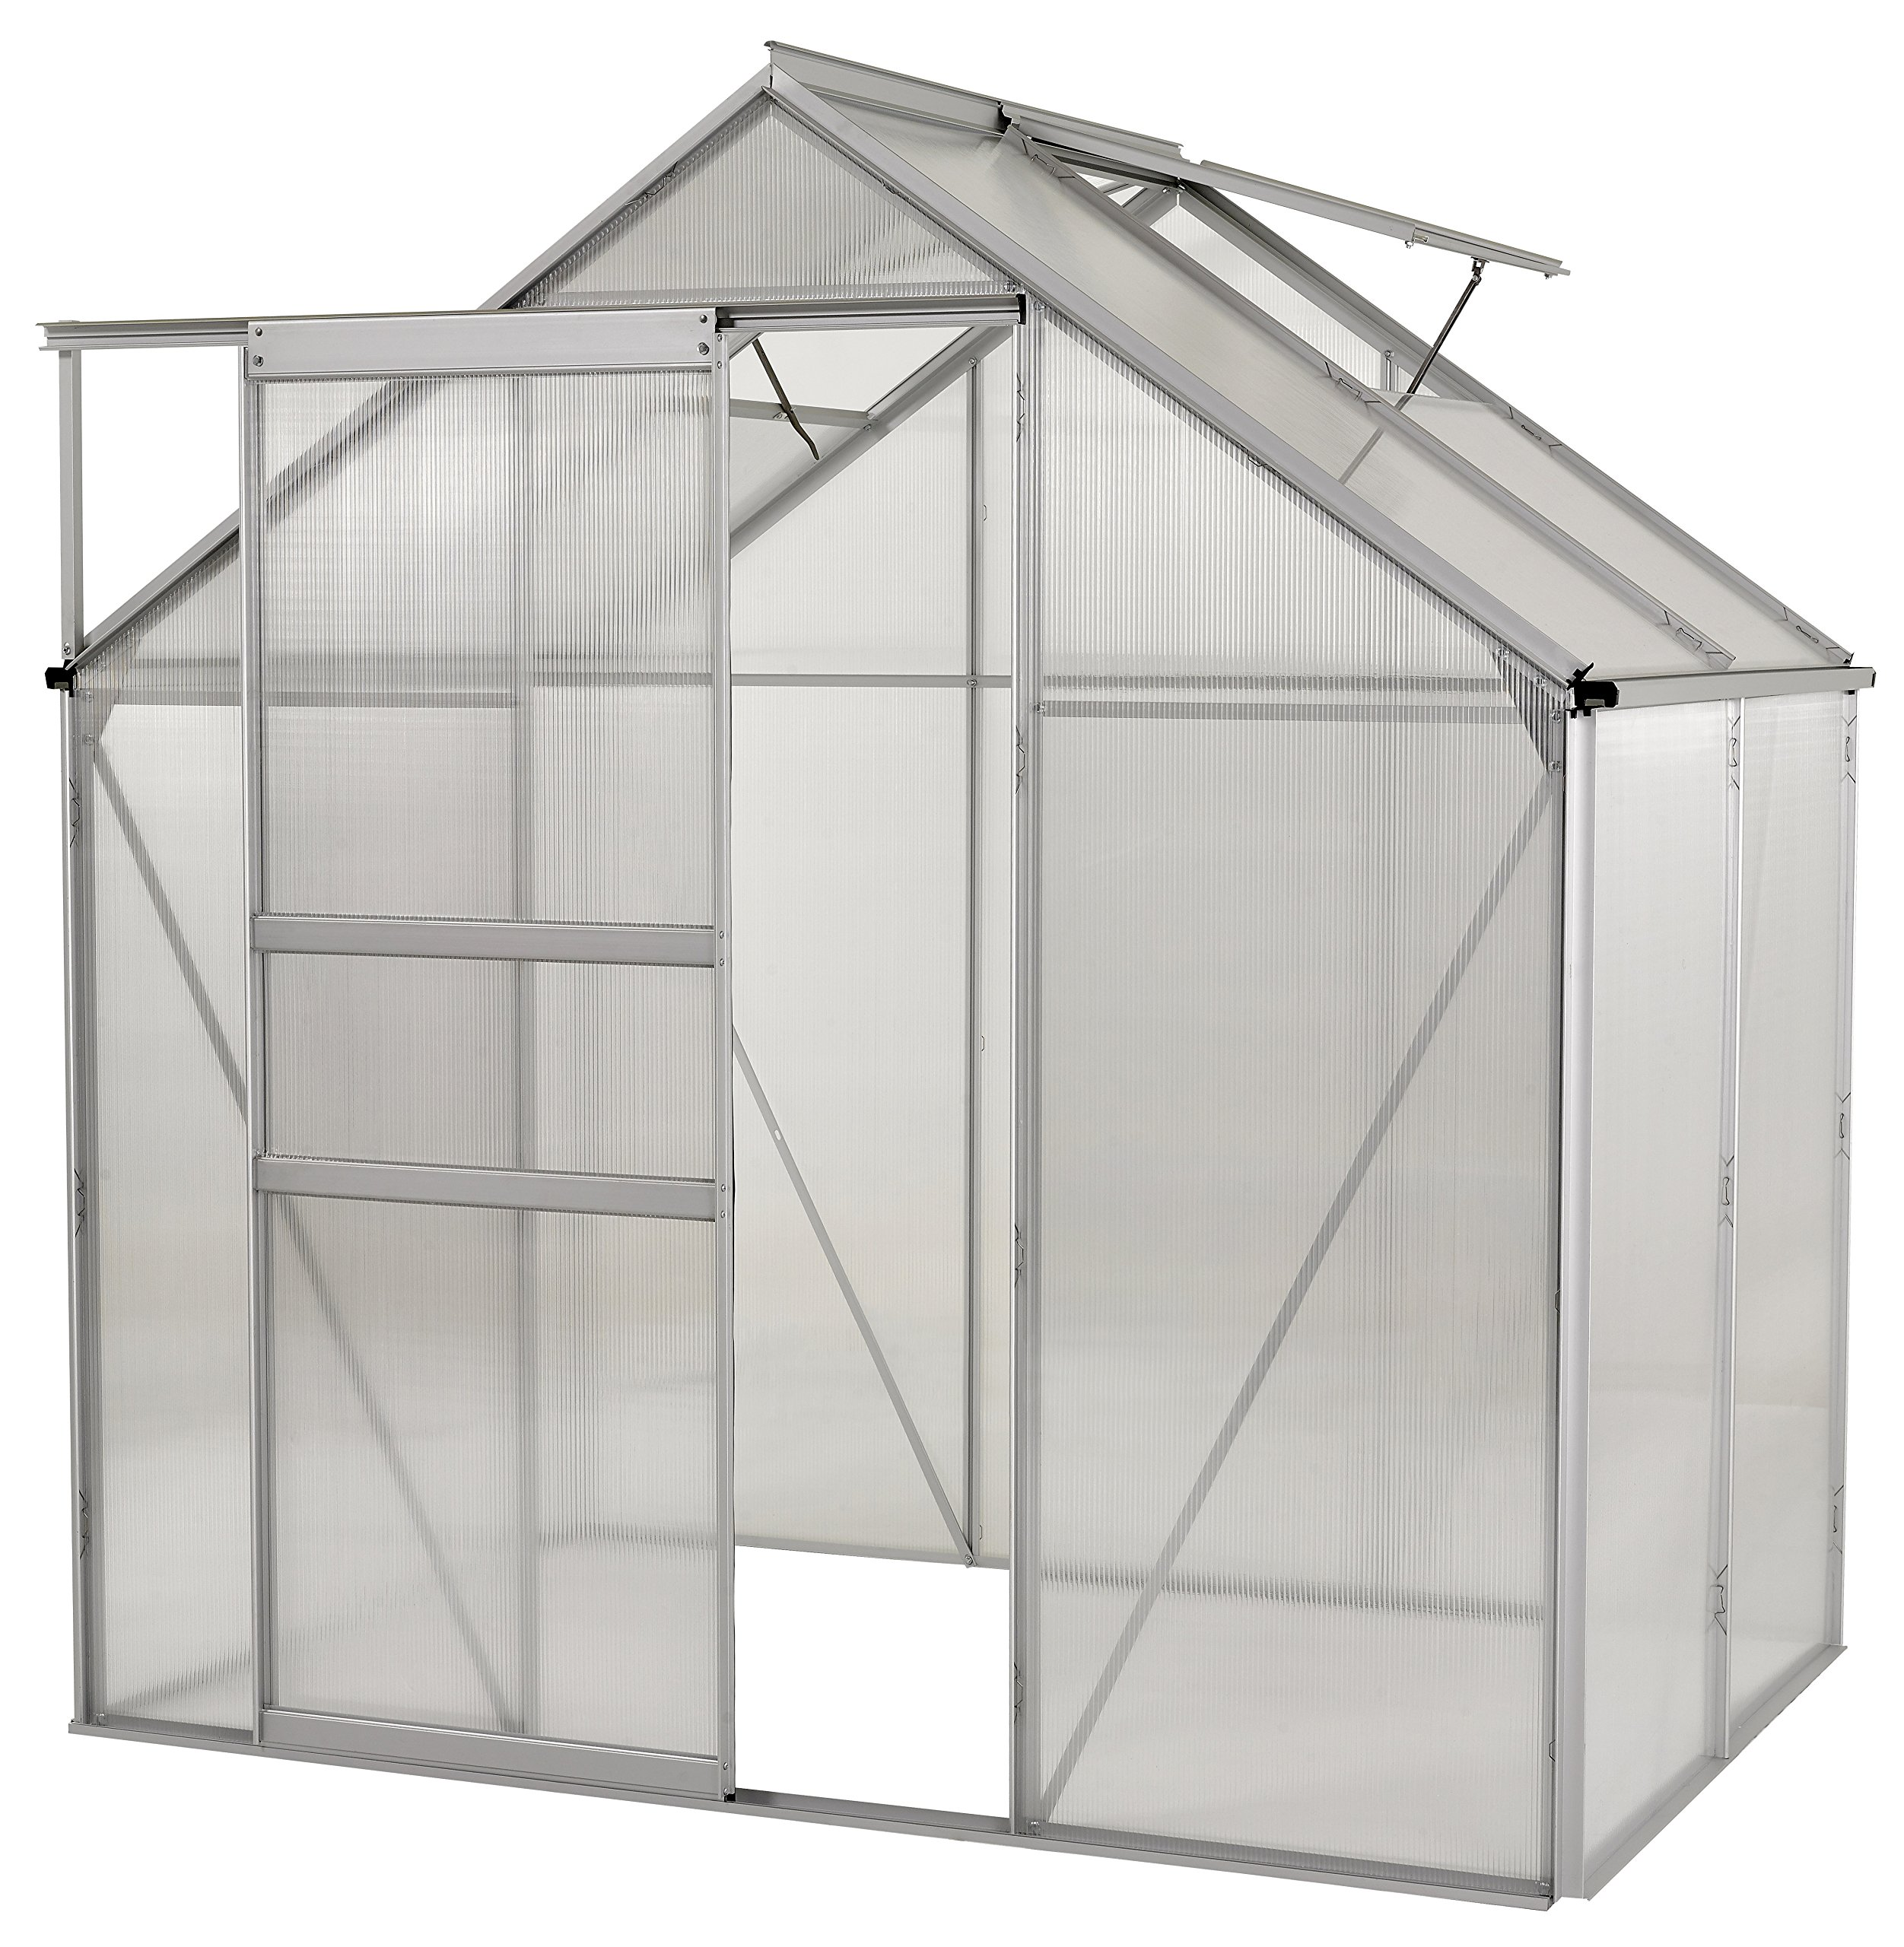 Ogrow OGAL-466 Aluminium Greenhouse by OGrow